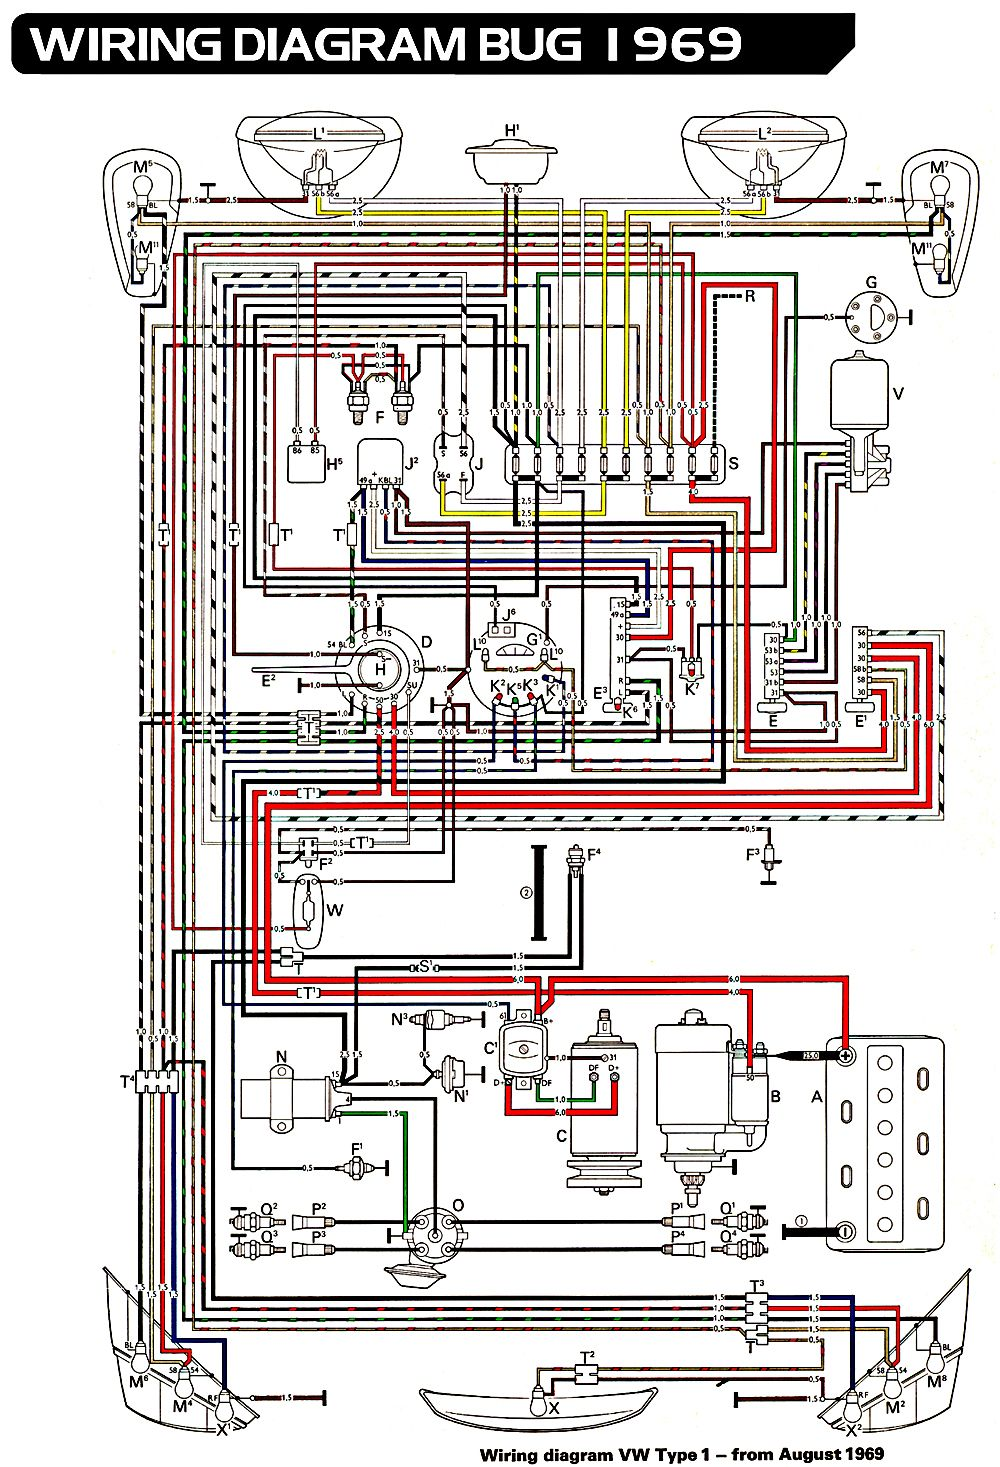 6d75c15875479254f26a32a8499d9044 volkswagen beetle wiring diagram 1966 vw beetle wiring vw wiring diagrams at pacquiaovsvargaslive.co